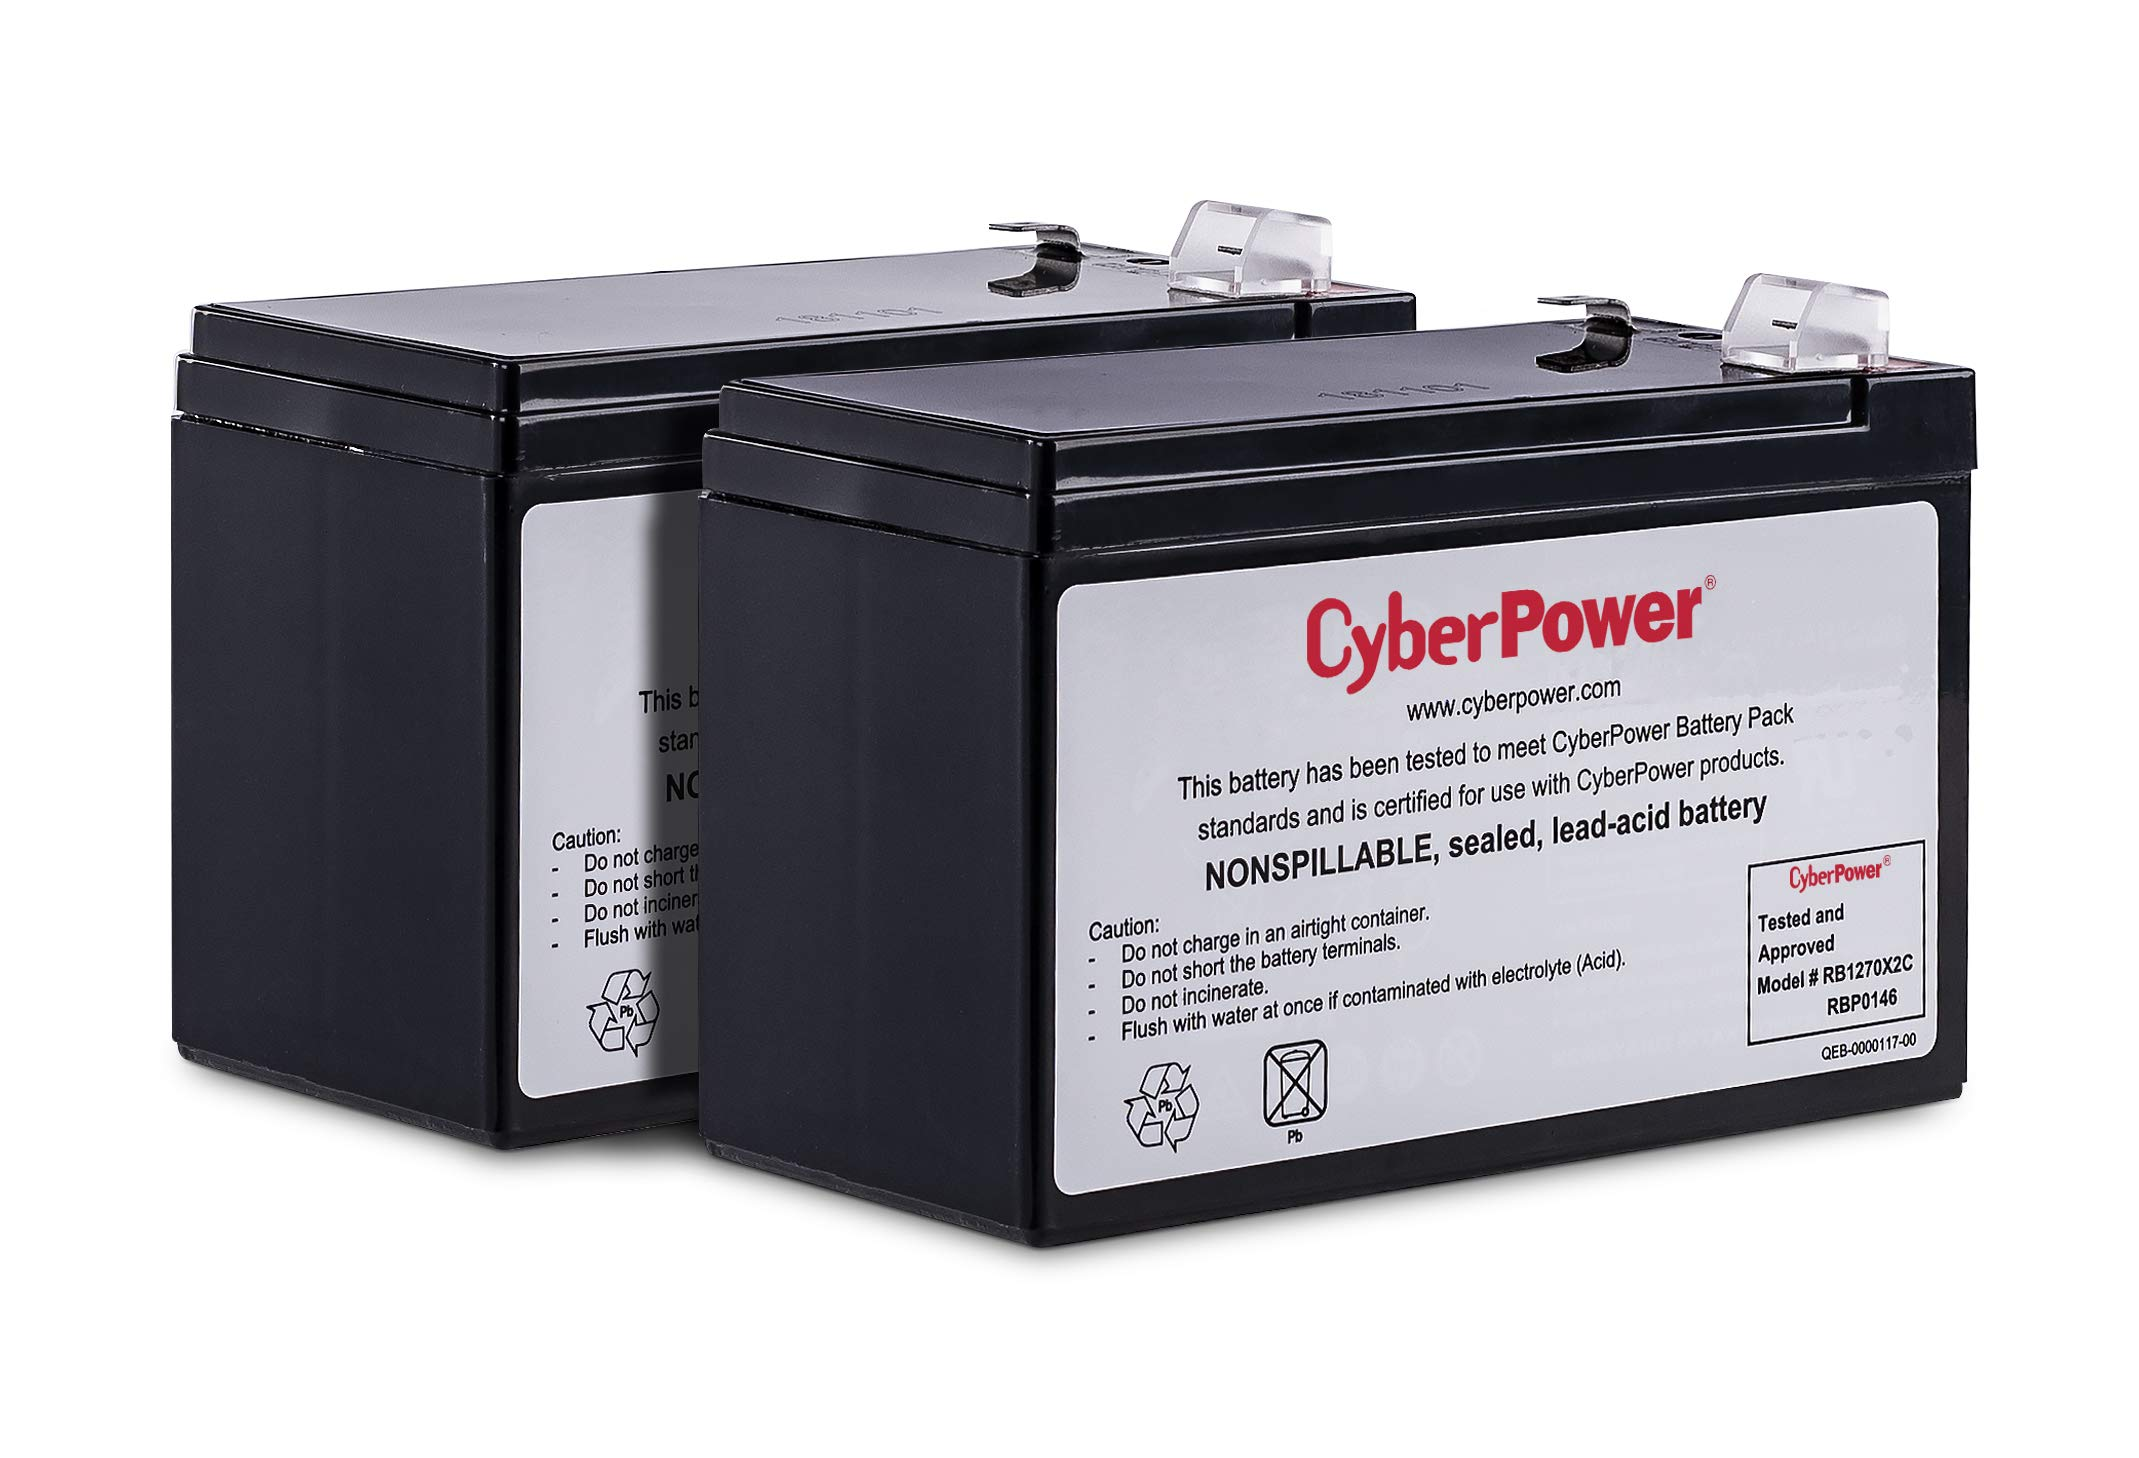 CyberPower RB1270X2C UPS Replacement Battery Cartridge, 12V/7Ah by CyberPower